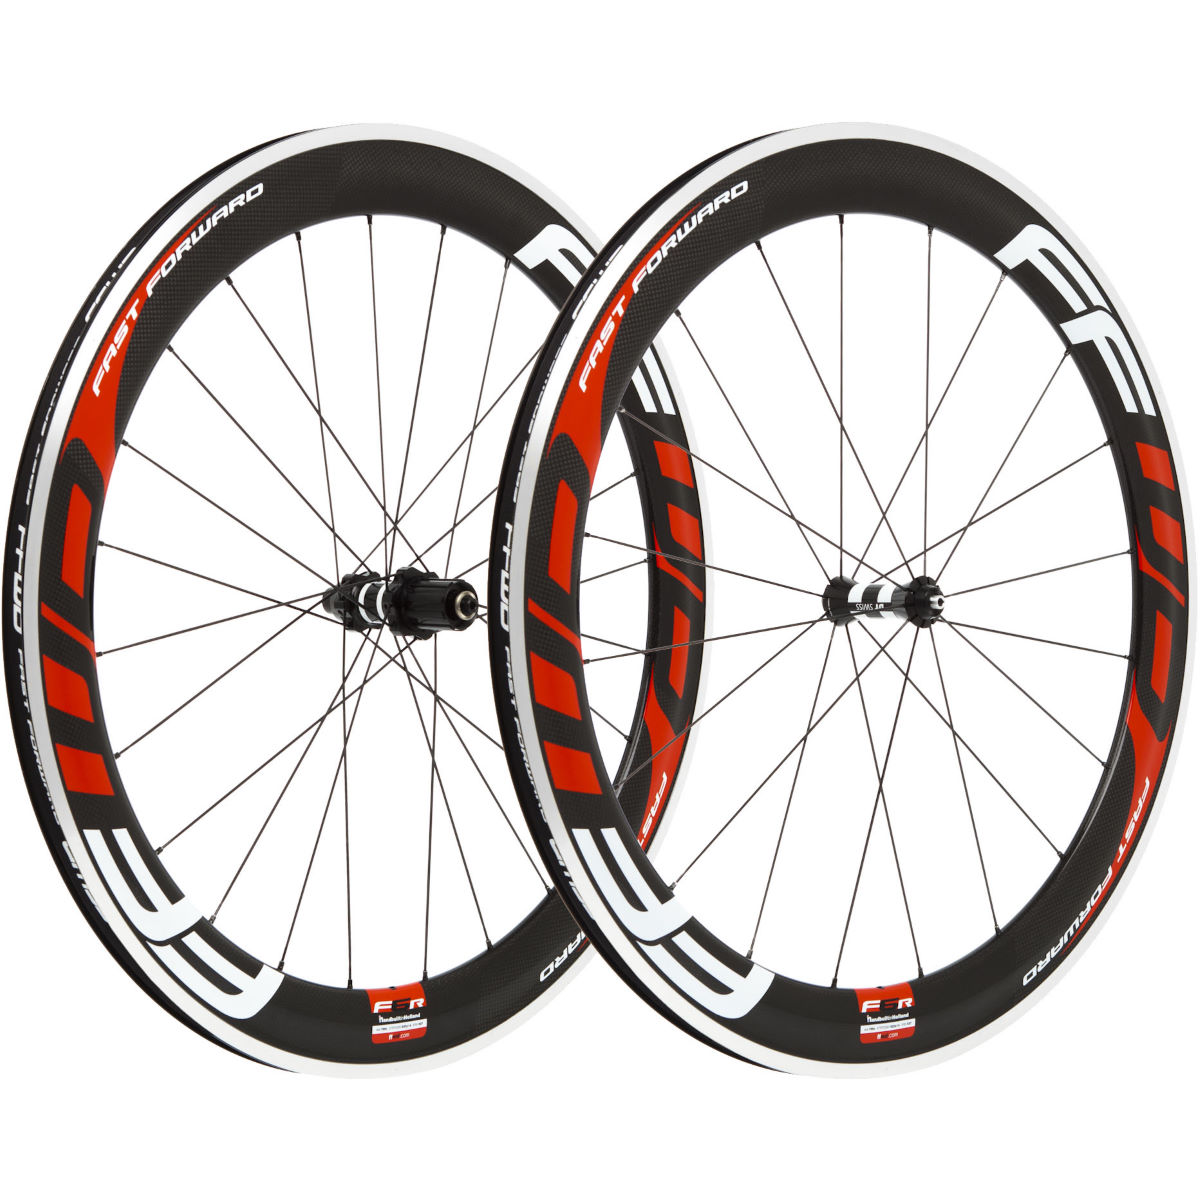 Fast Forward Carbon F6R Clincher 60mm SP Wheelset - Juegos de ruedas